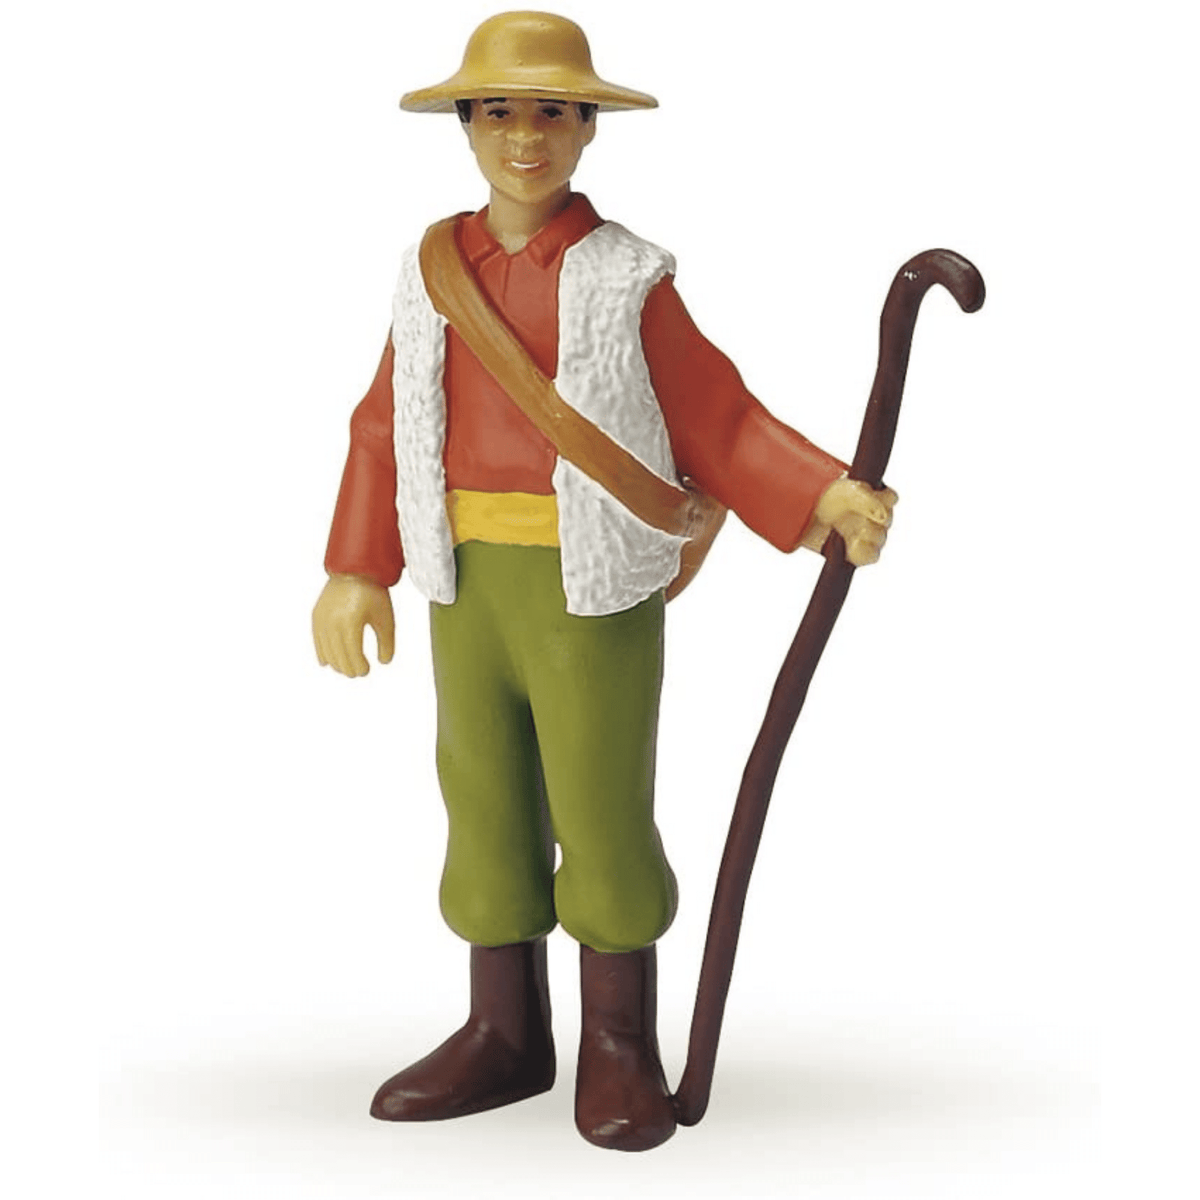 Papo Shepherd toy figure